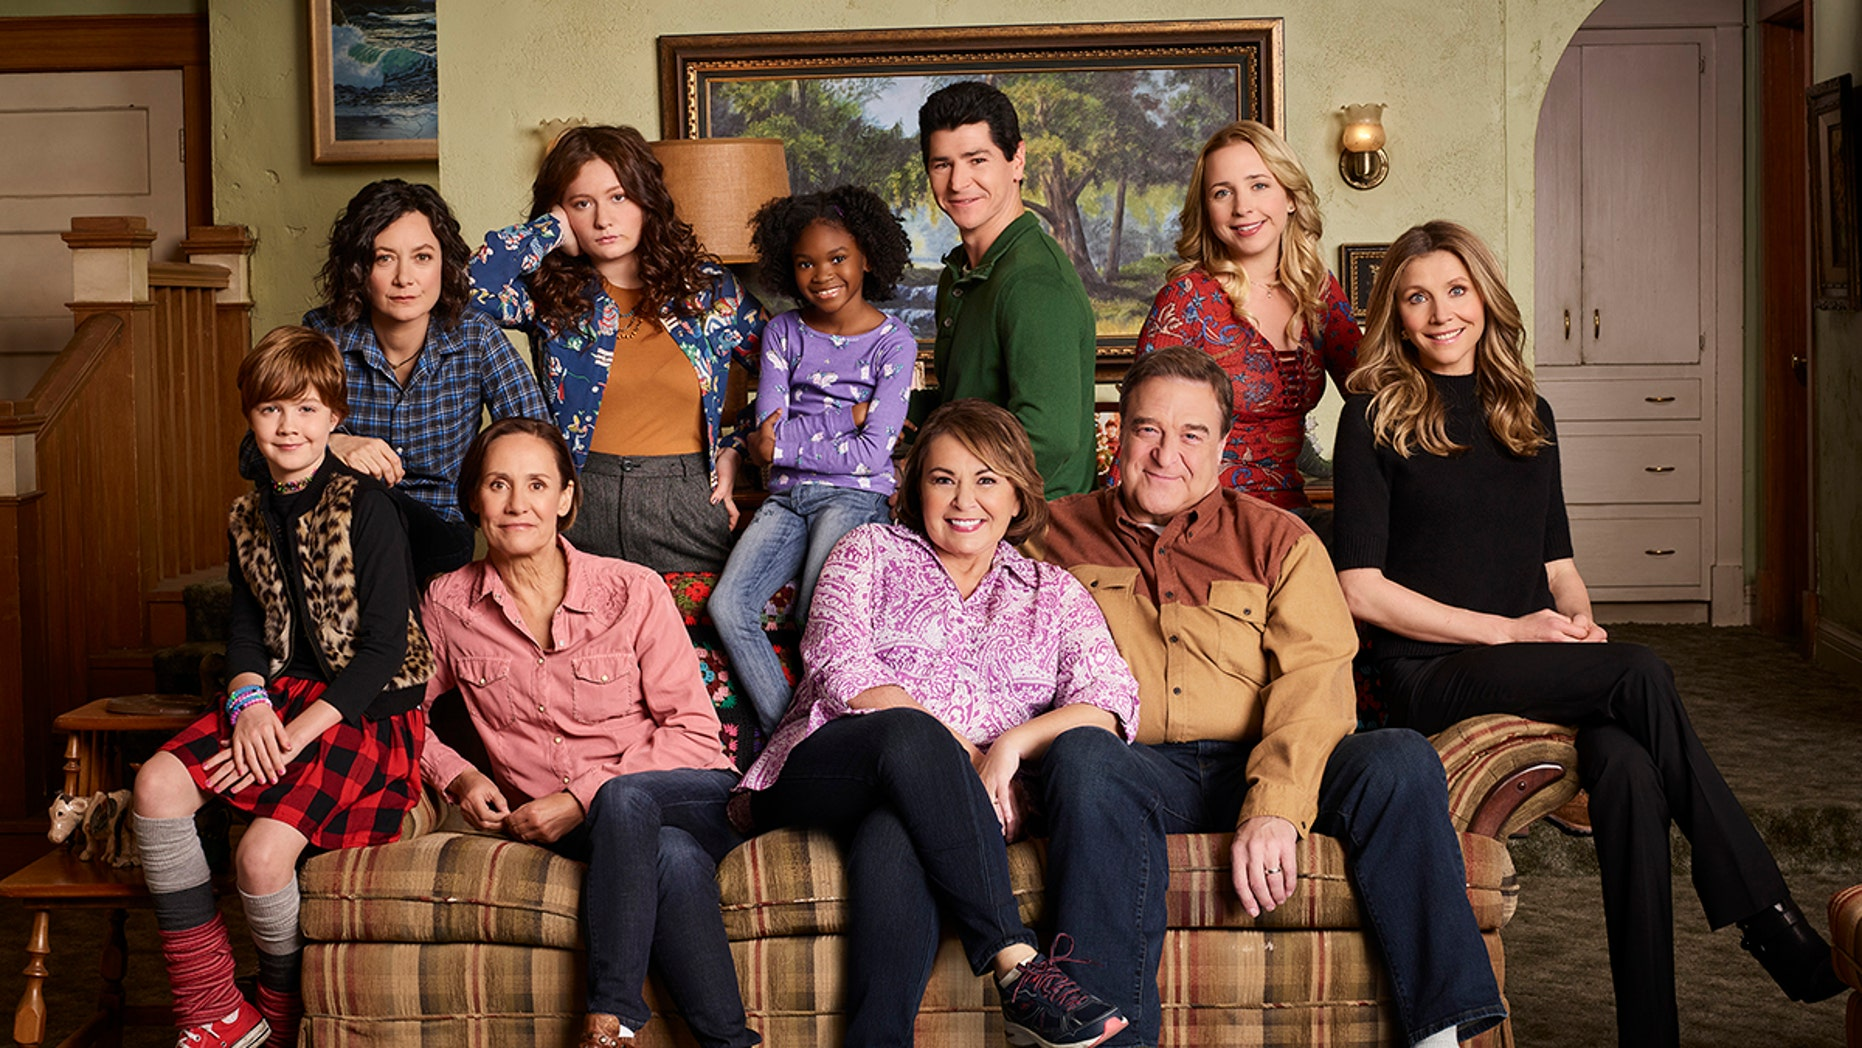 "ROSEANNE - ABC's ""Roseanne"" stars Ames McNamara as Mark, Sara Gilbert as Darlene Conner, Laurie Metcalf as Jackie Harris, Emma Kenney as Harris Conner, Jayden Rey as Mary, Roseanne Barr as Roseanne Conner, Michael Fishman as D.J. Conner, John Goodman as Dan Conner, Lecy Goranson as Becky Conner, and Sarah Chalke as Andrea. (ABC/Robert Trachtenberg)"